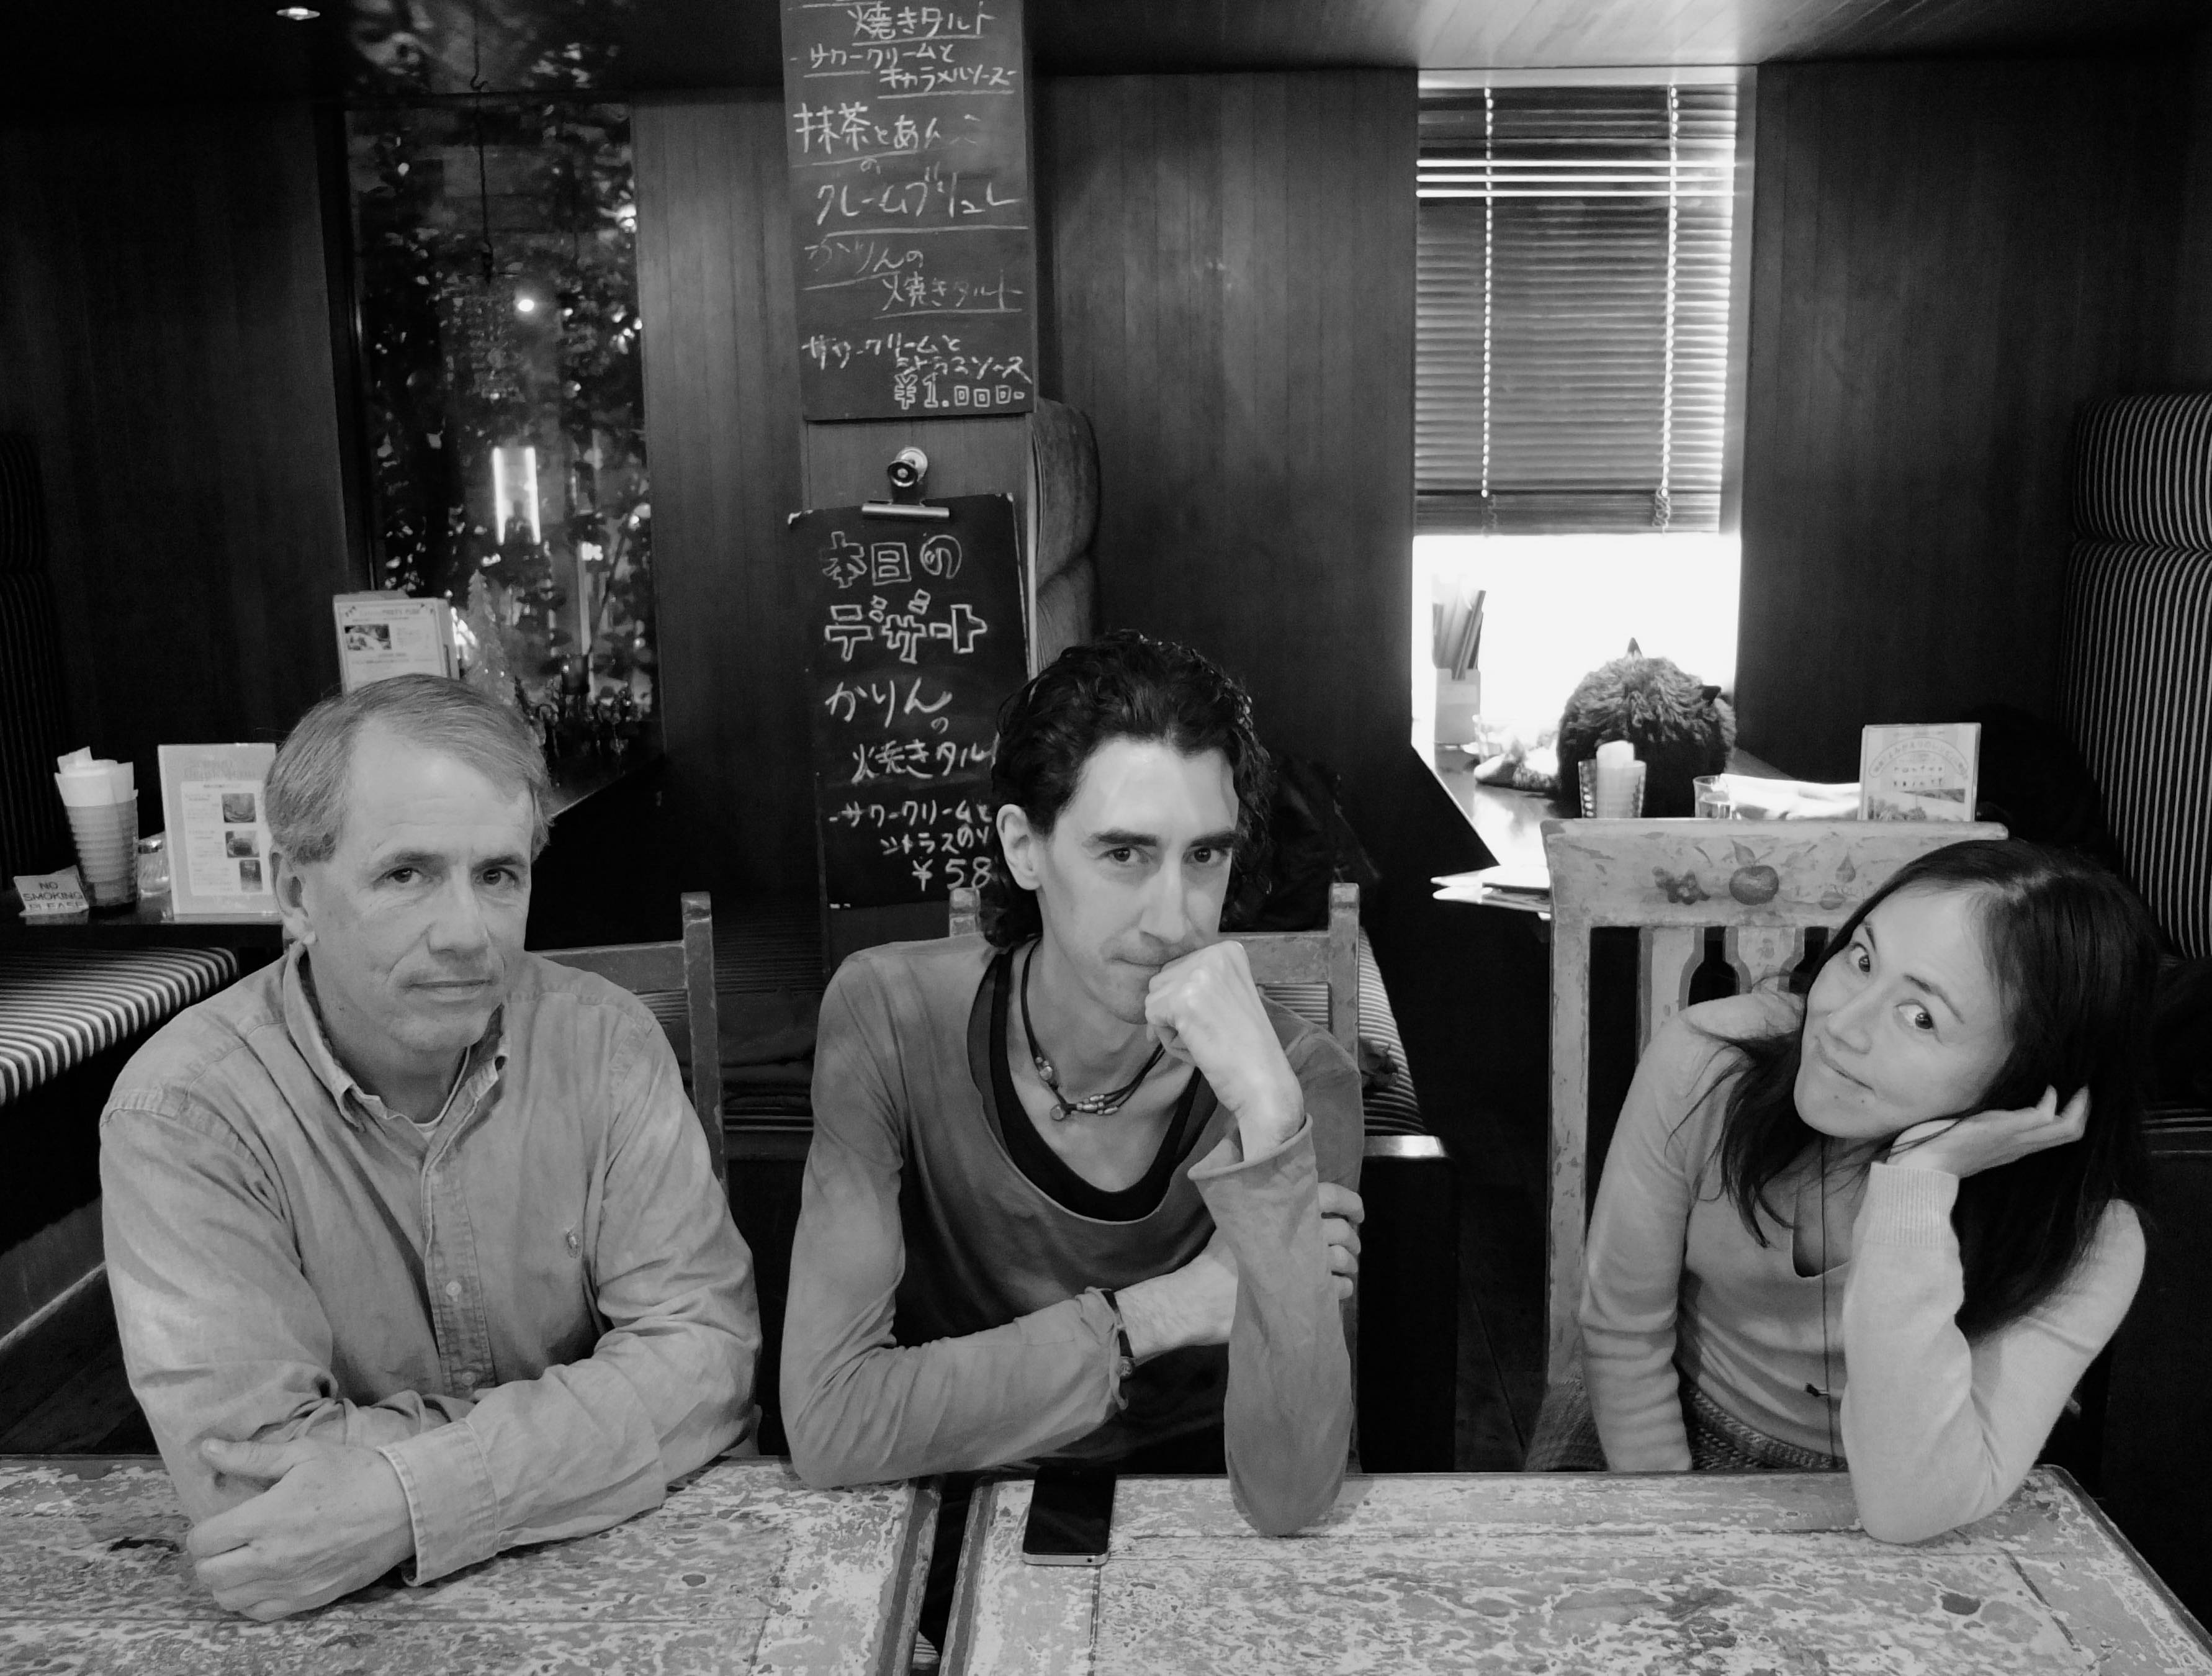 When shall we three meet again: JT film critics (from left) Mark Schilling, Giovanni Fazio and Kaori Shoji.